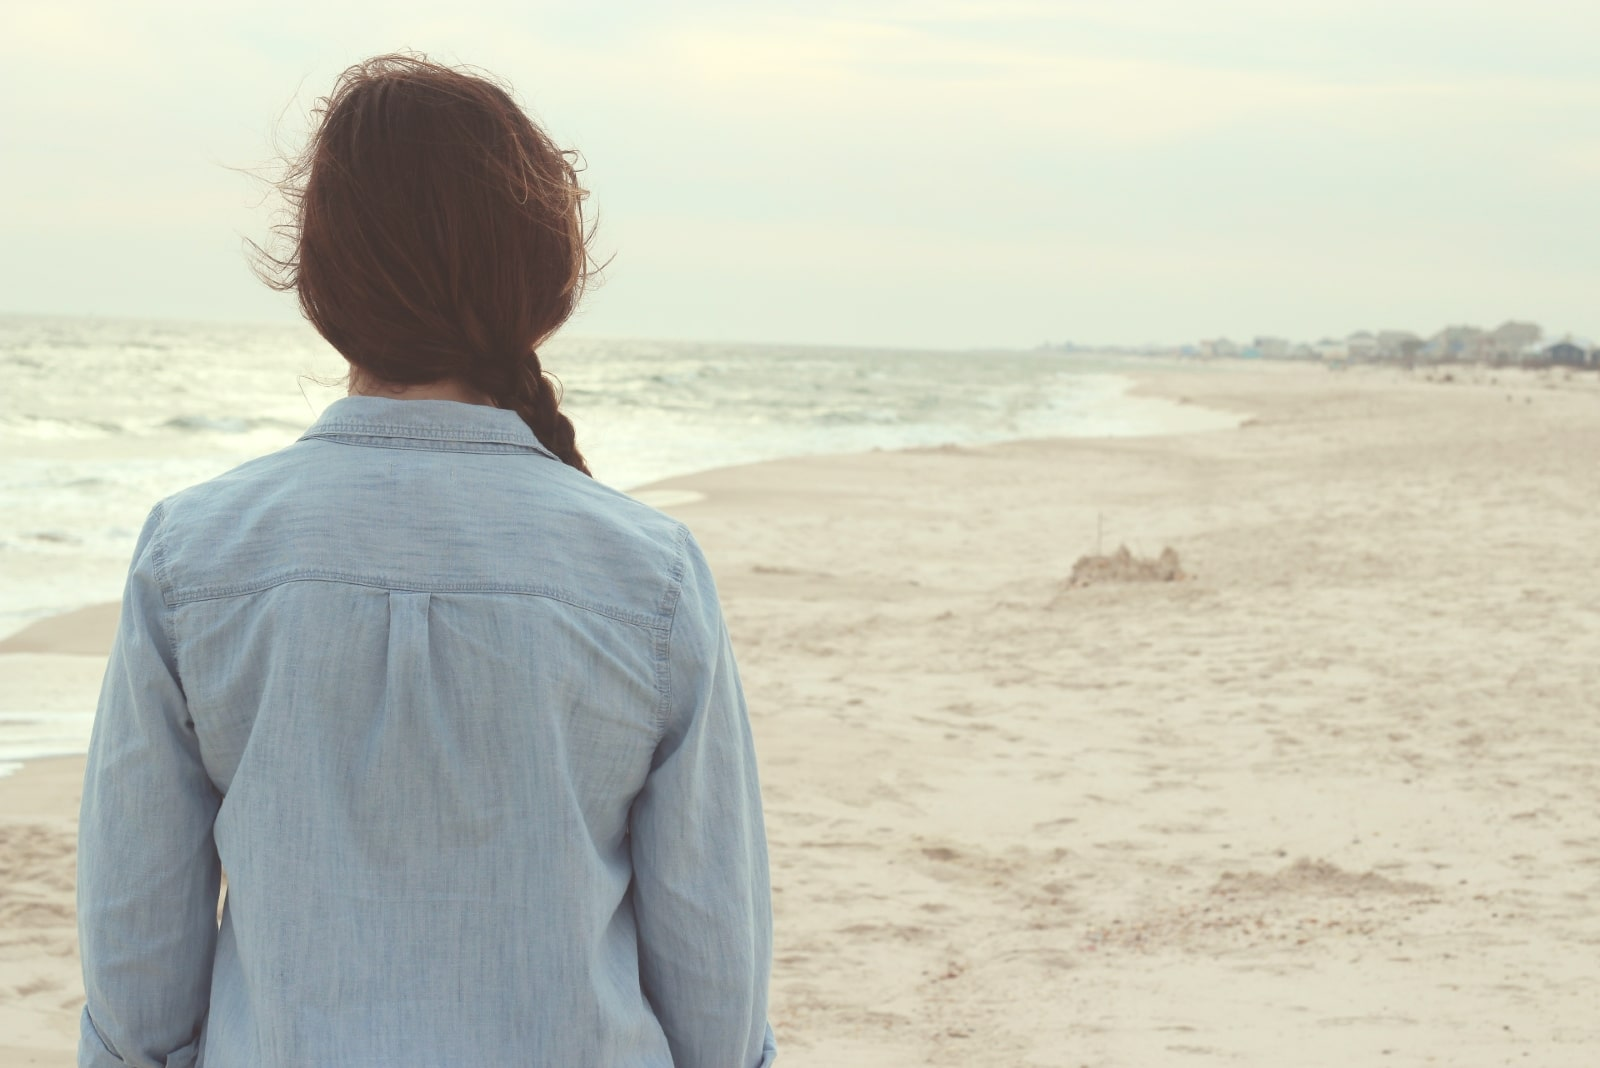 woman in denim shirt standing on shore looking at ocean